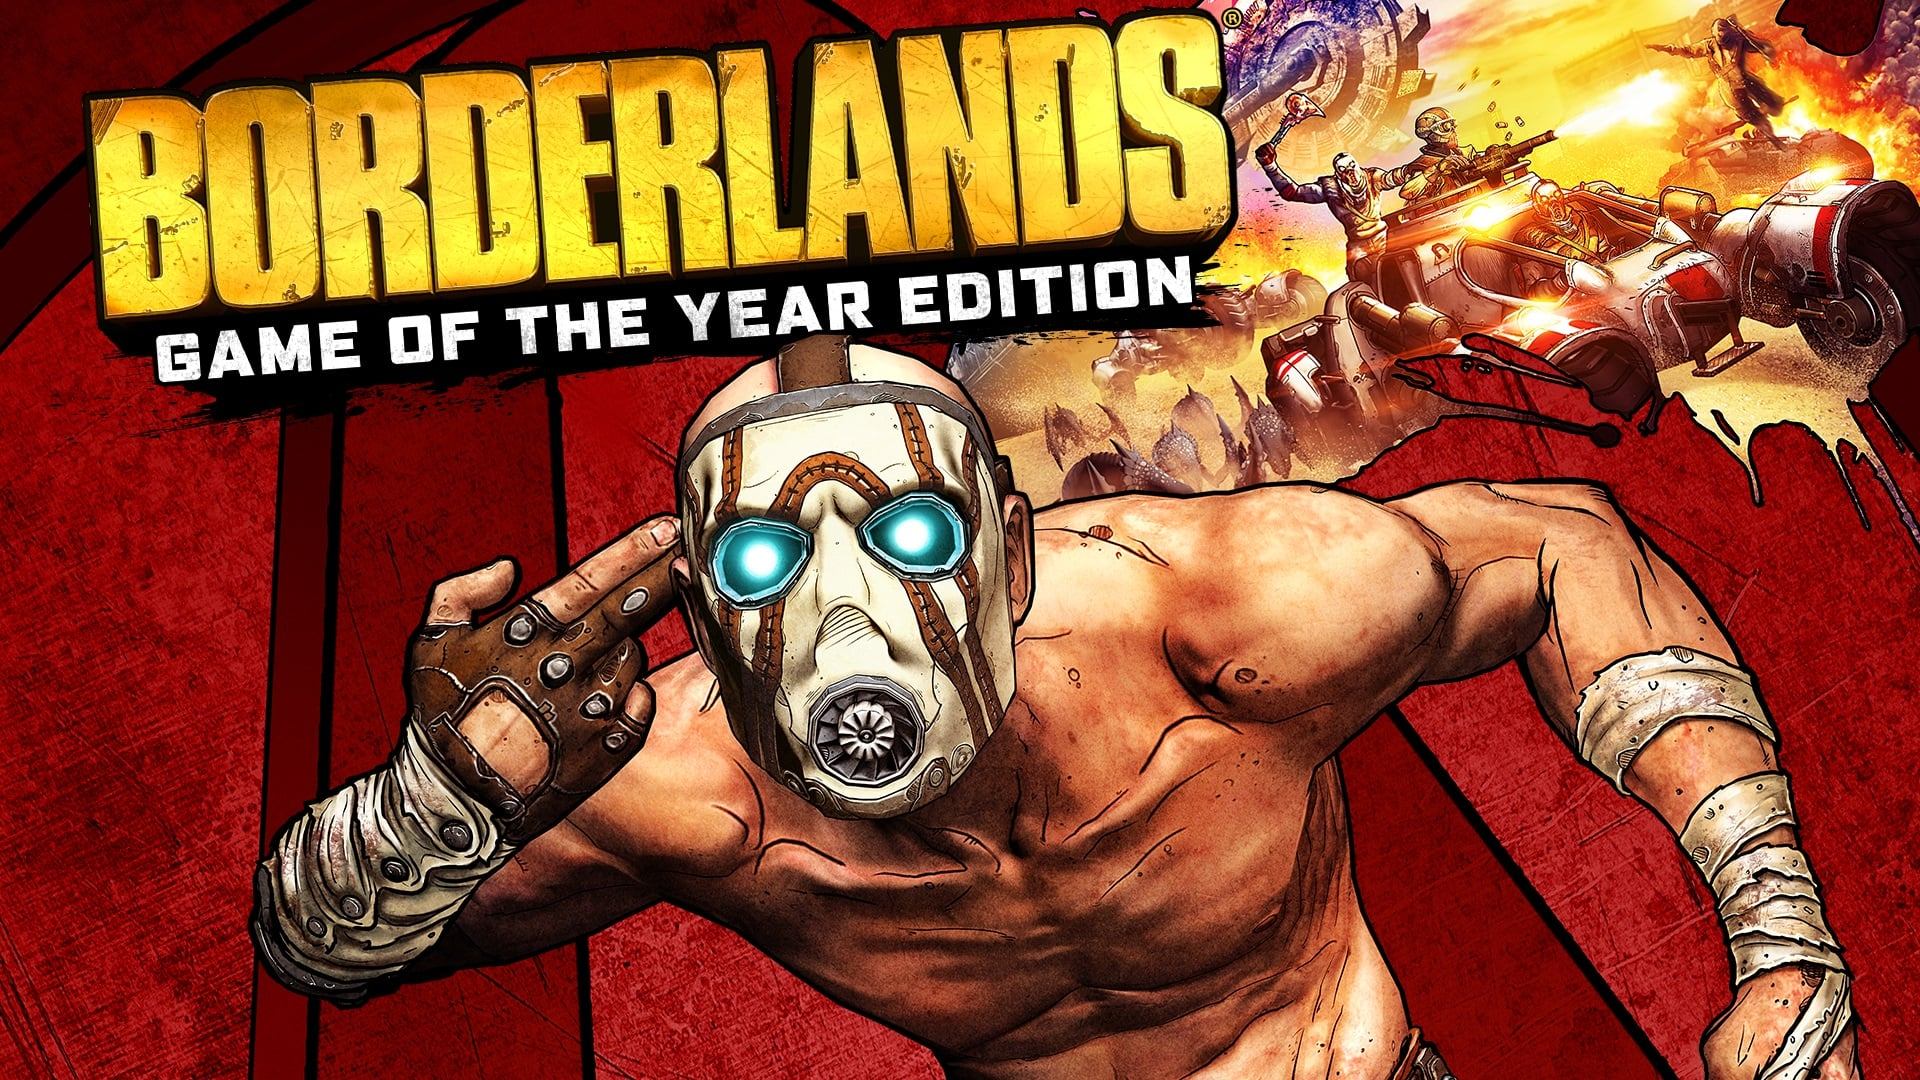 Gold Keys Given Out Because of Borderlands: Game of the Year